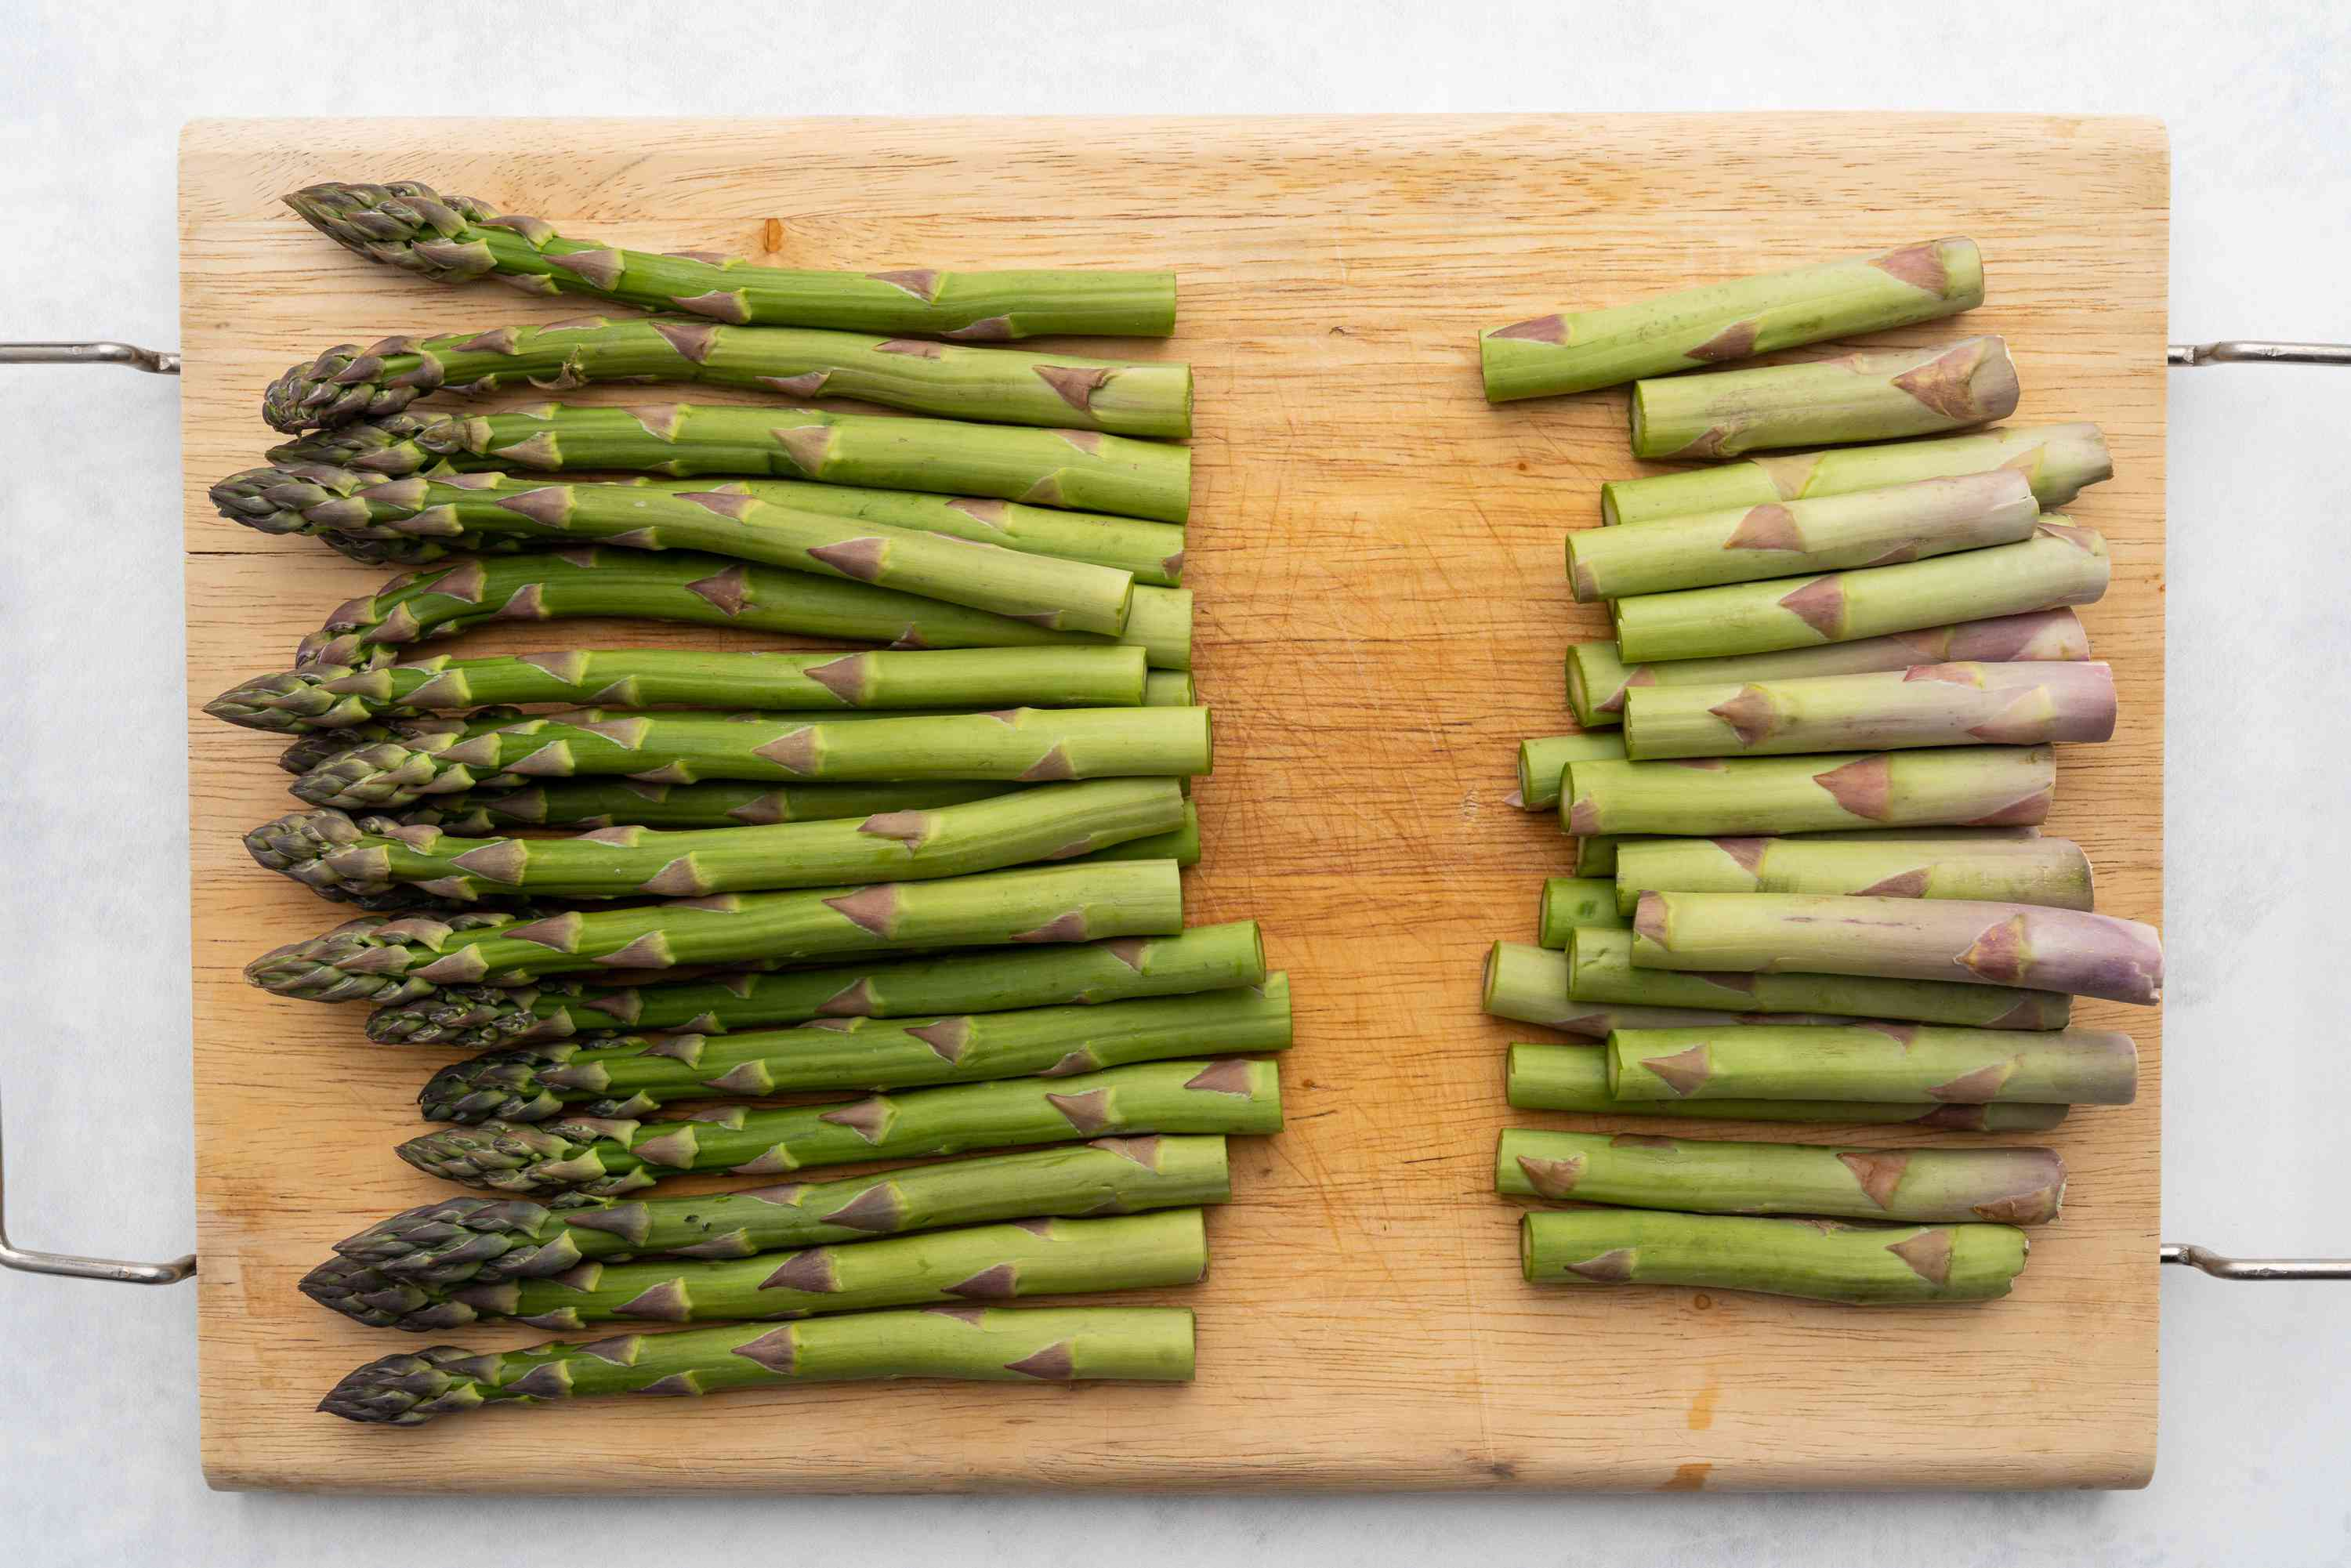 Trimmed asparagus spears on a cutting board